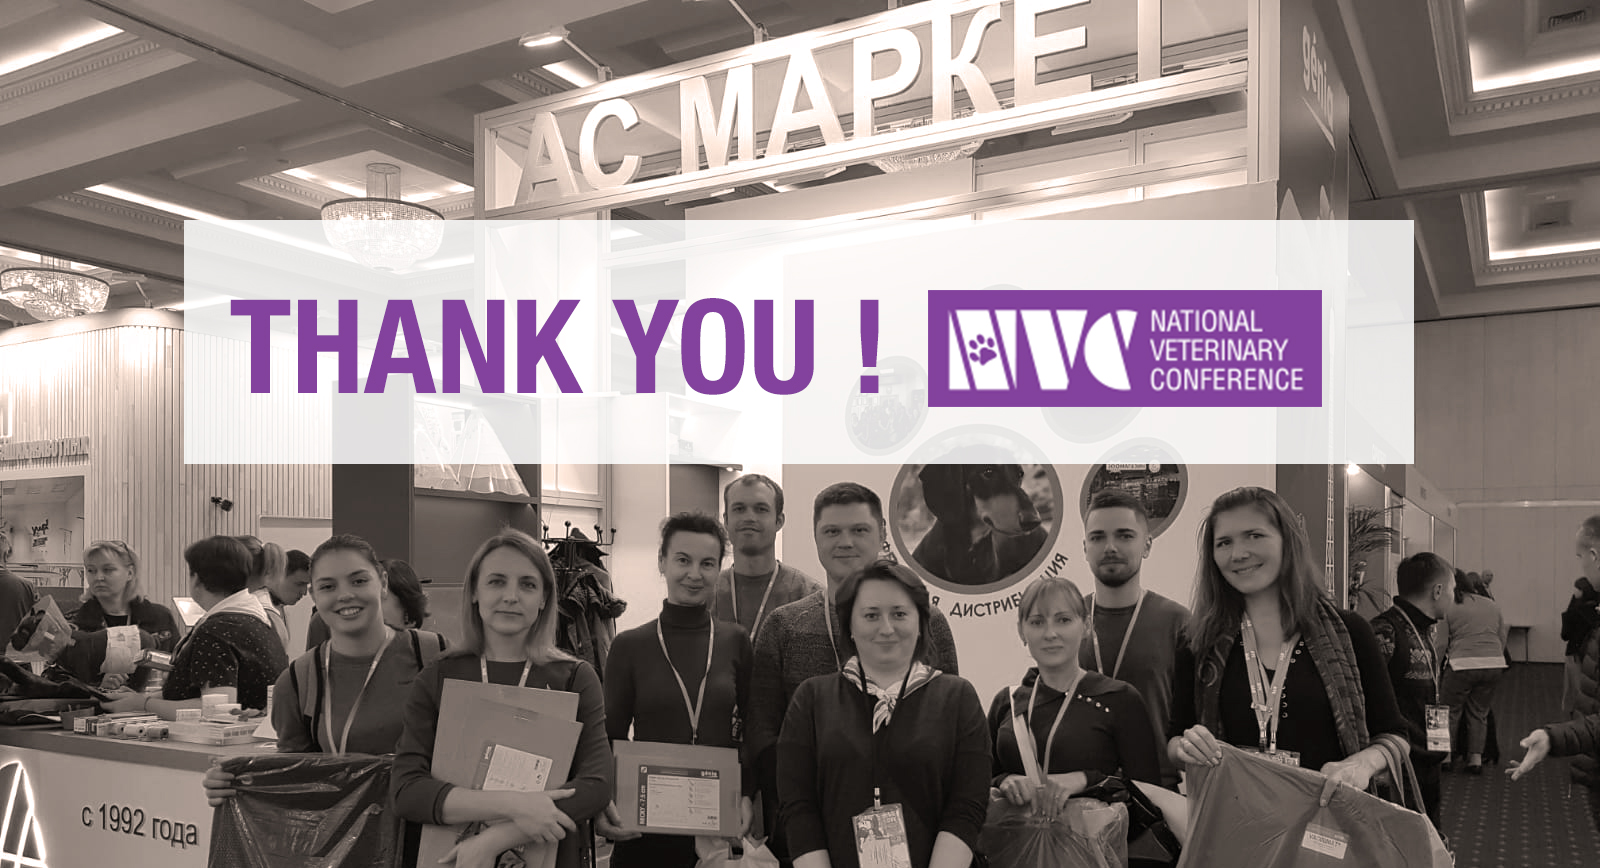 Thanks you to come to the NVC 2019!